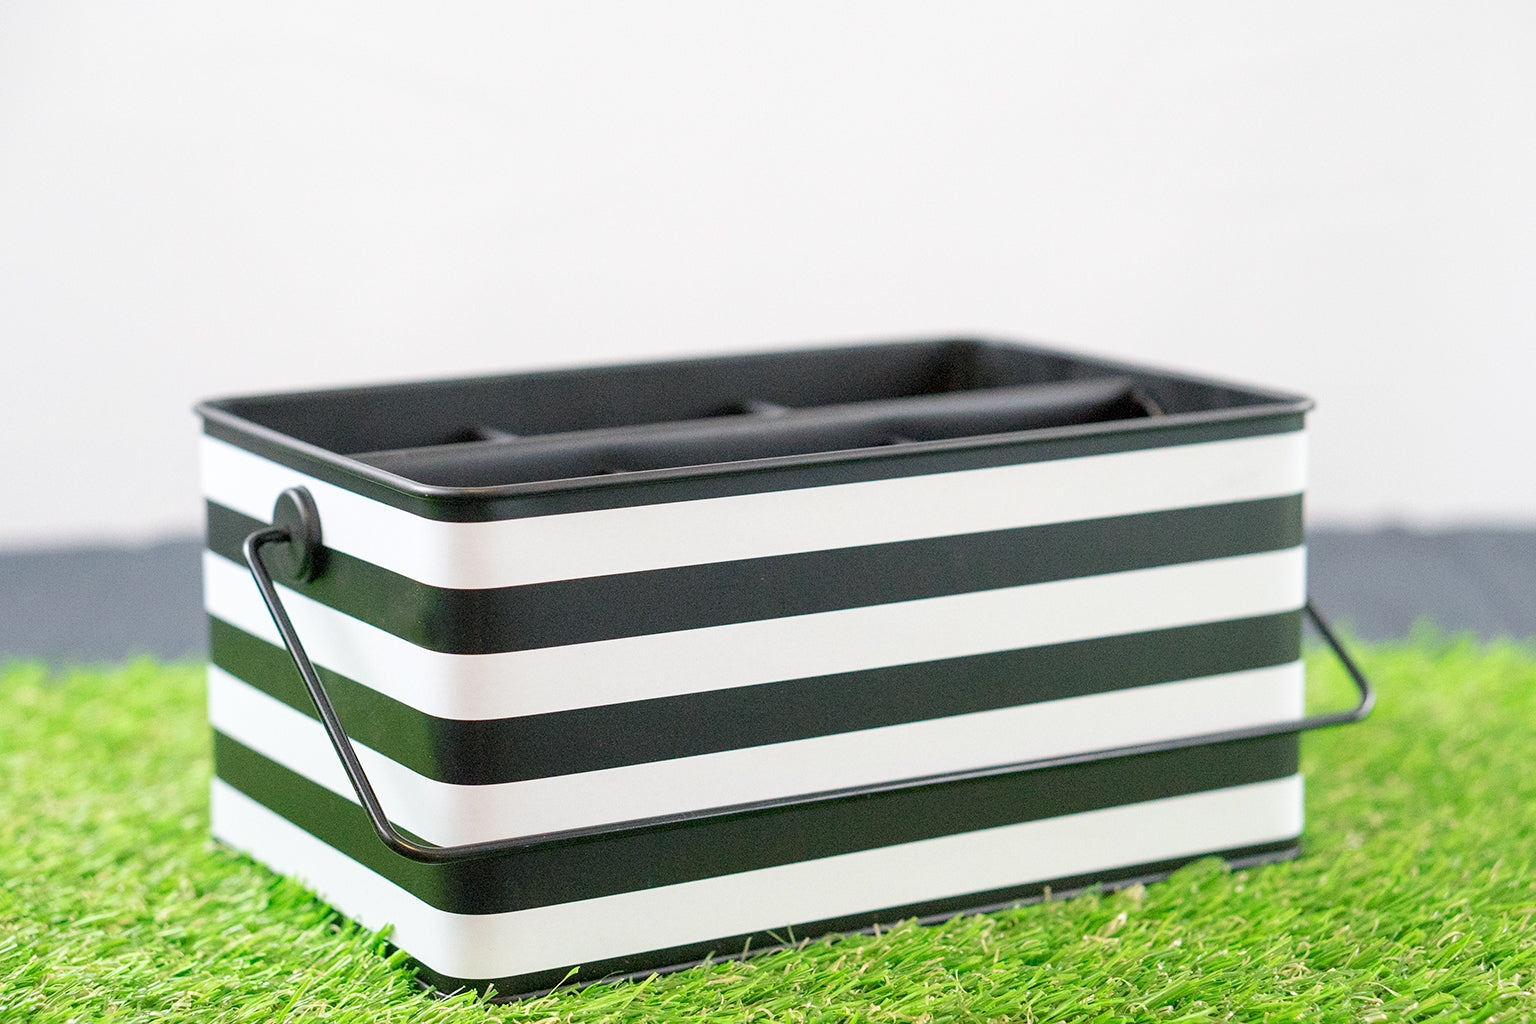 Black & White Stripe Utensil Caddy - Well Hosted!